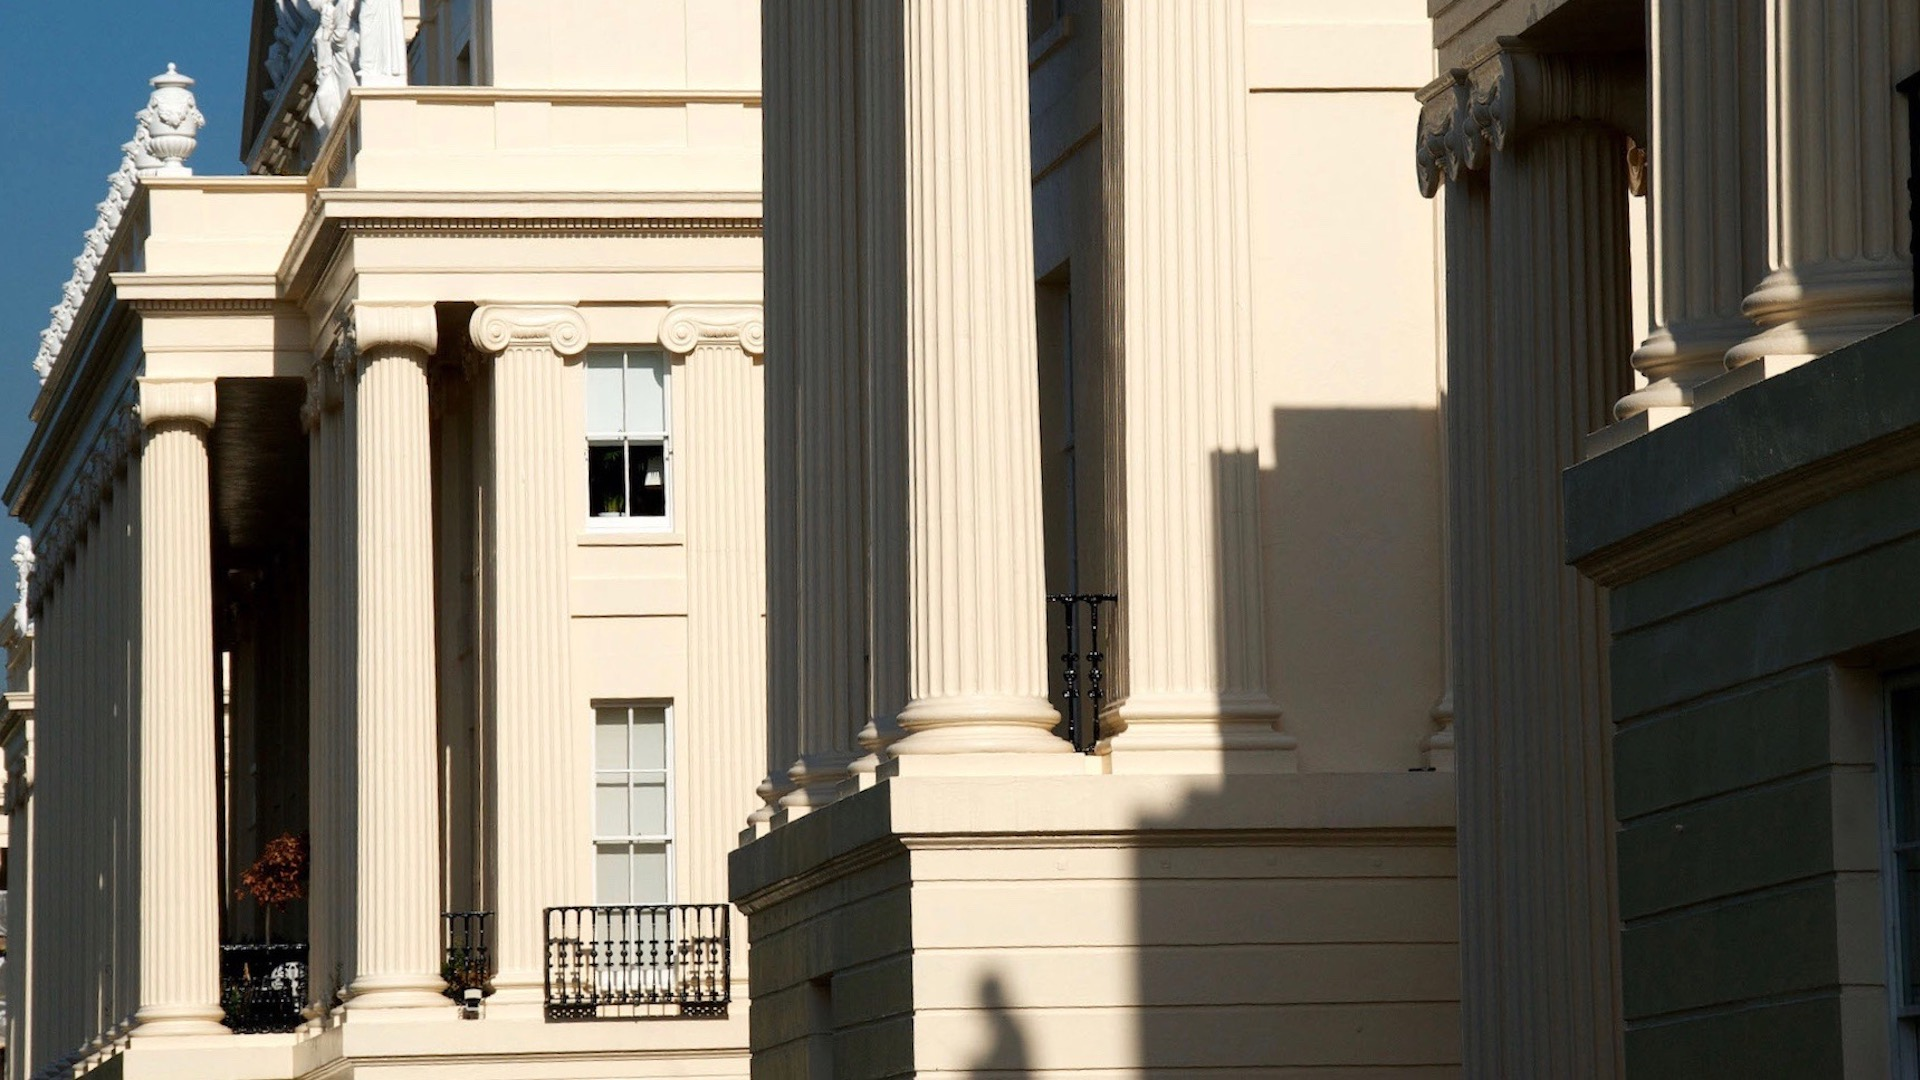 Exterior of Regency building in West London, with two-story ionic columns on the facade.